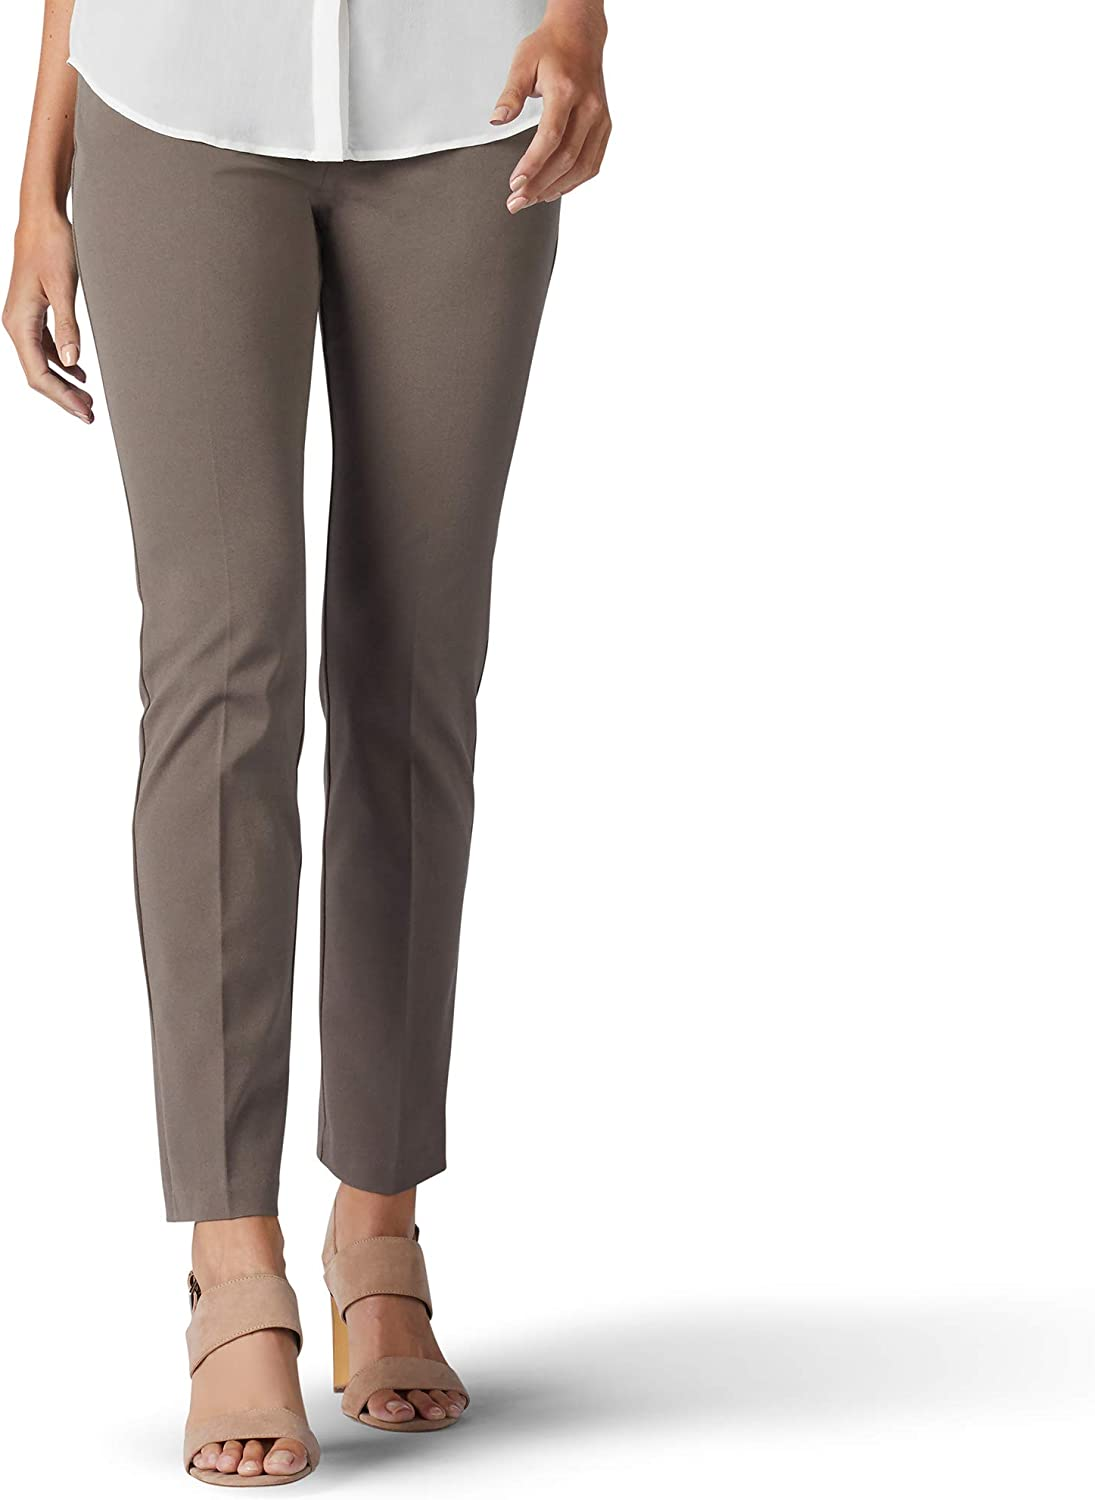 LEE Women's Sculpting Slim Fit Slim Leg Pull-On Pant